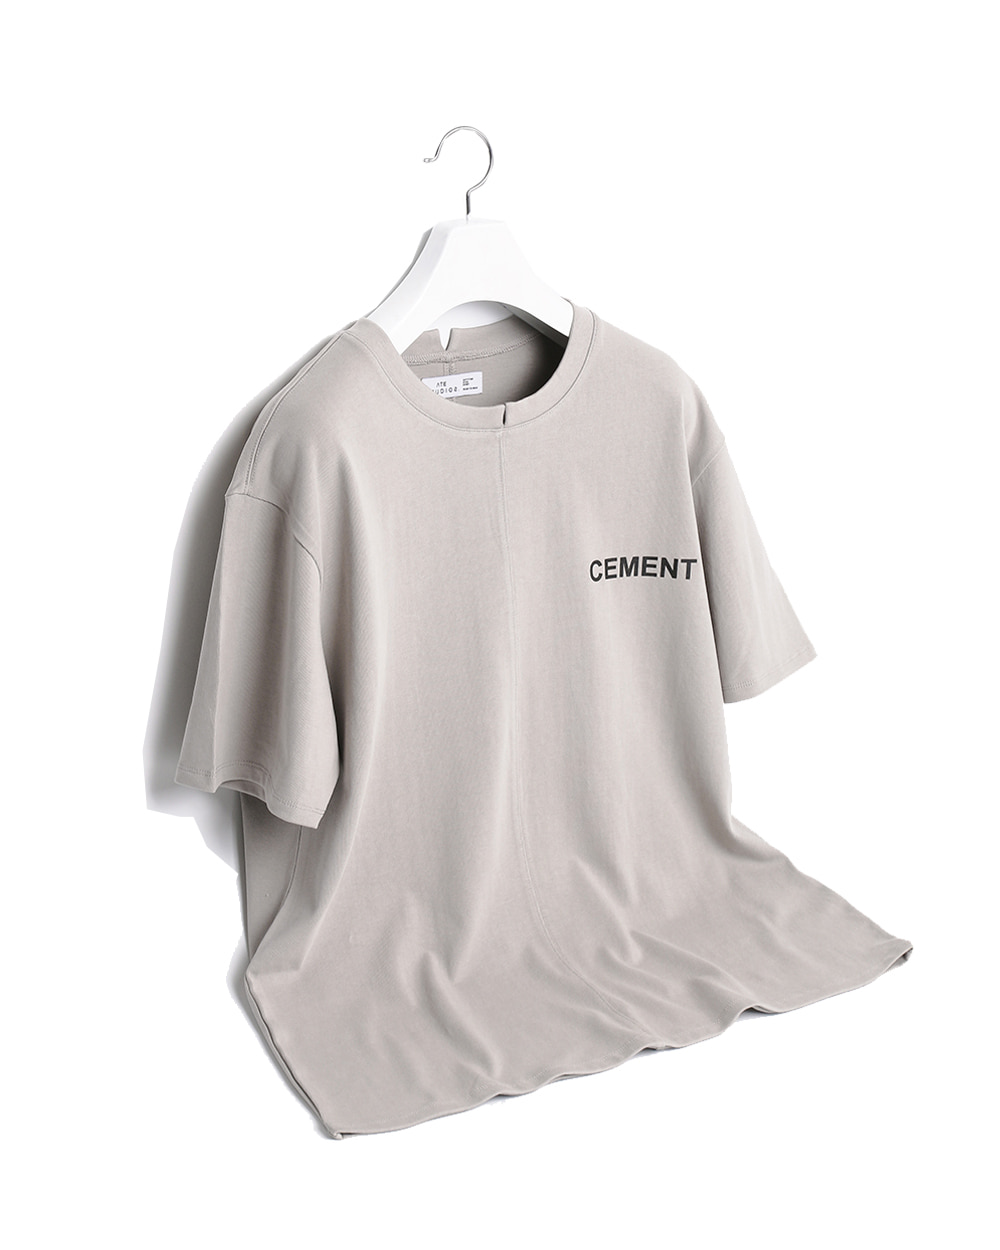 ATE STUDIOS CENMENT PRINTED T-SHIRTS (Grey)